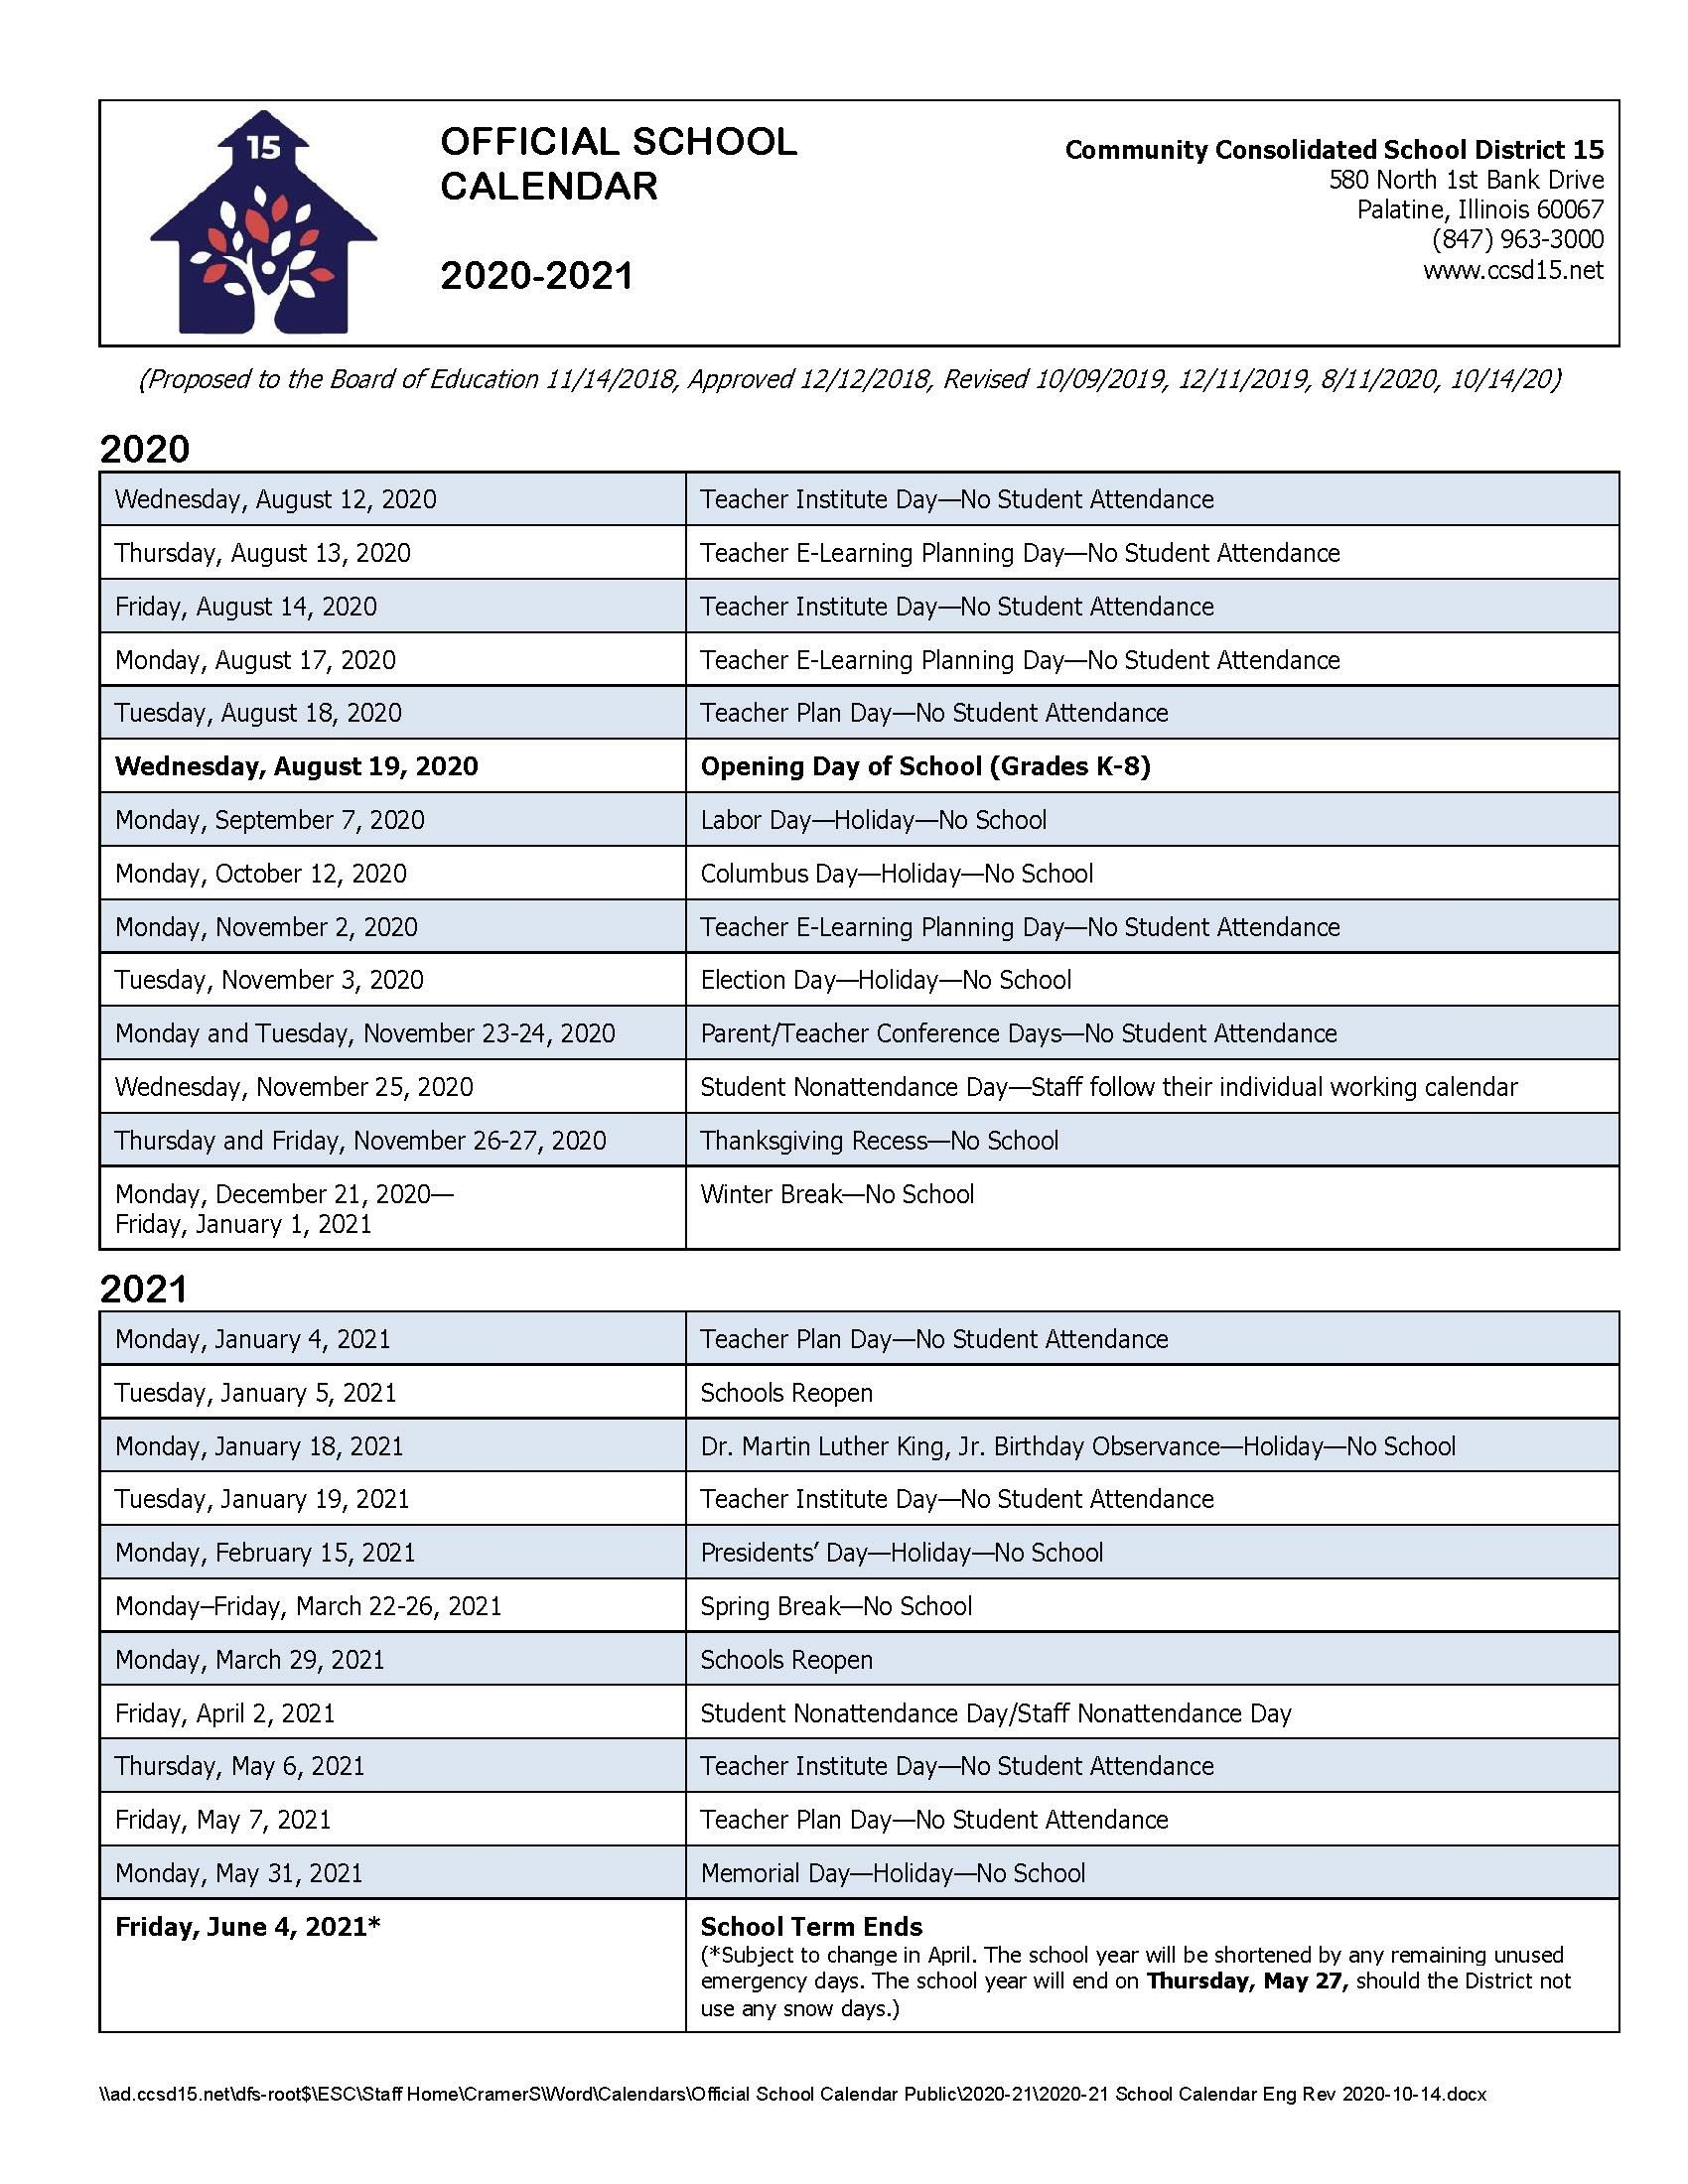 Clark County School District Calendar 2021-22 Calendars / 2020 21 Official School Calendar